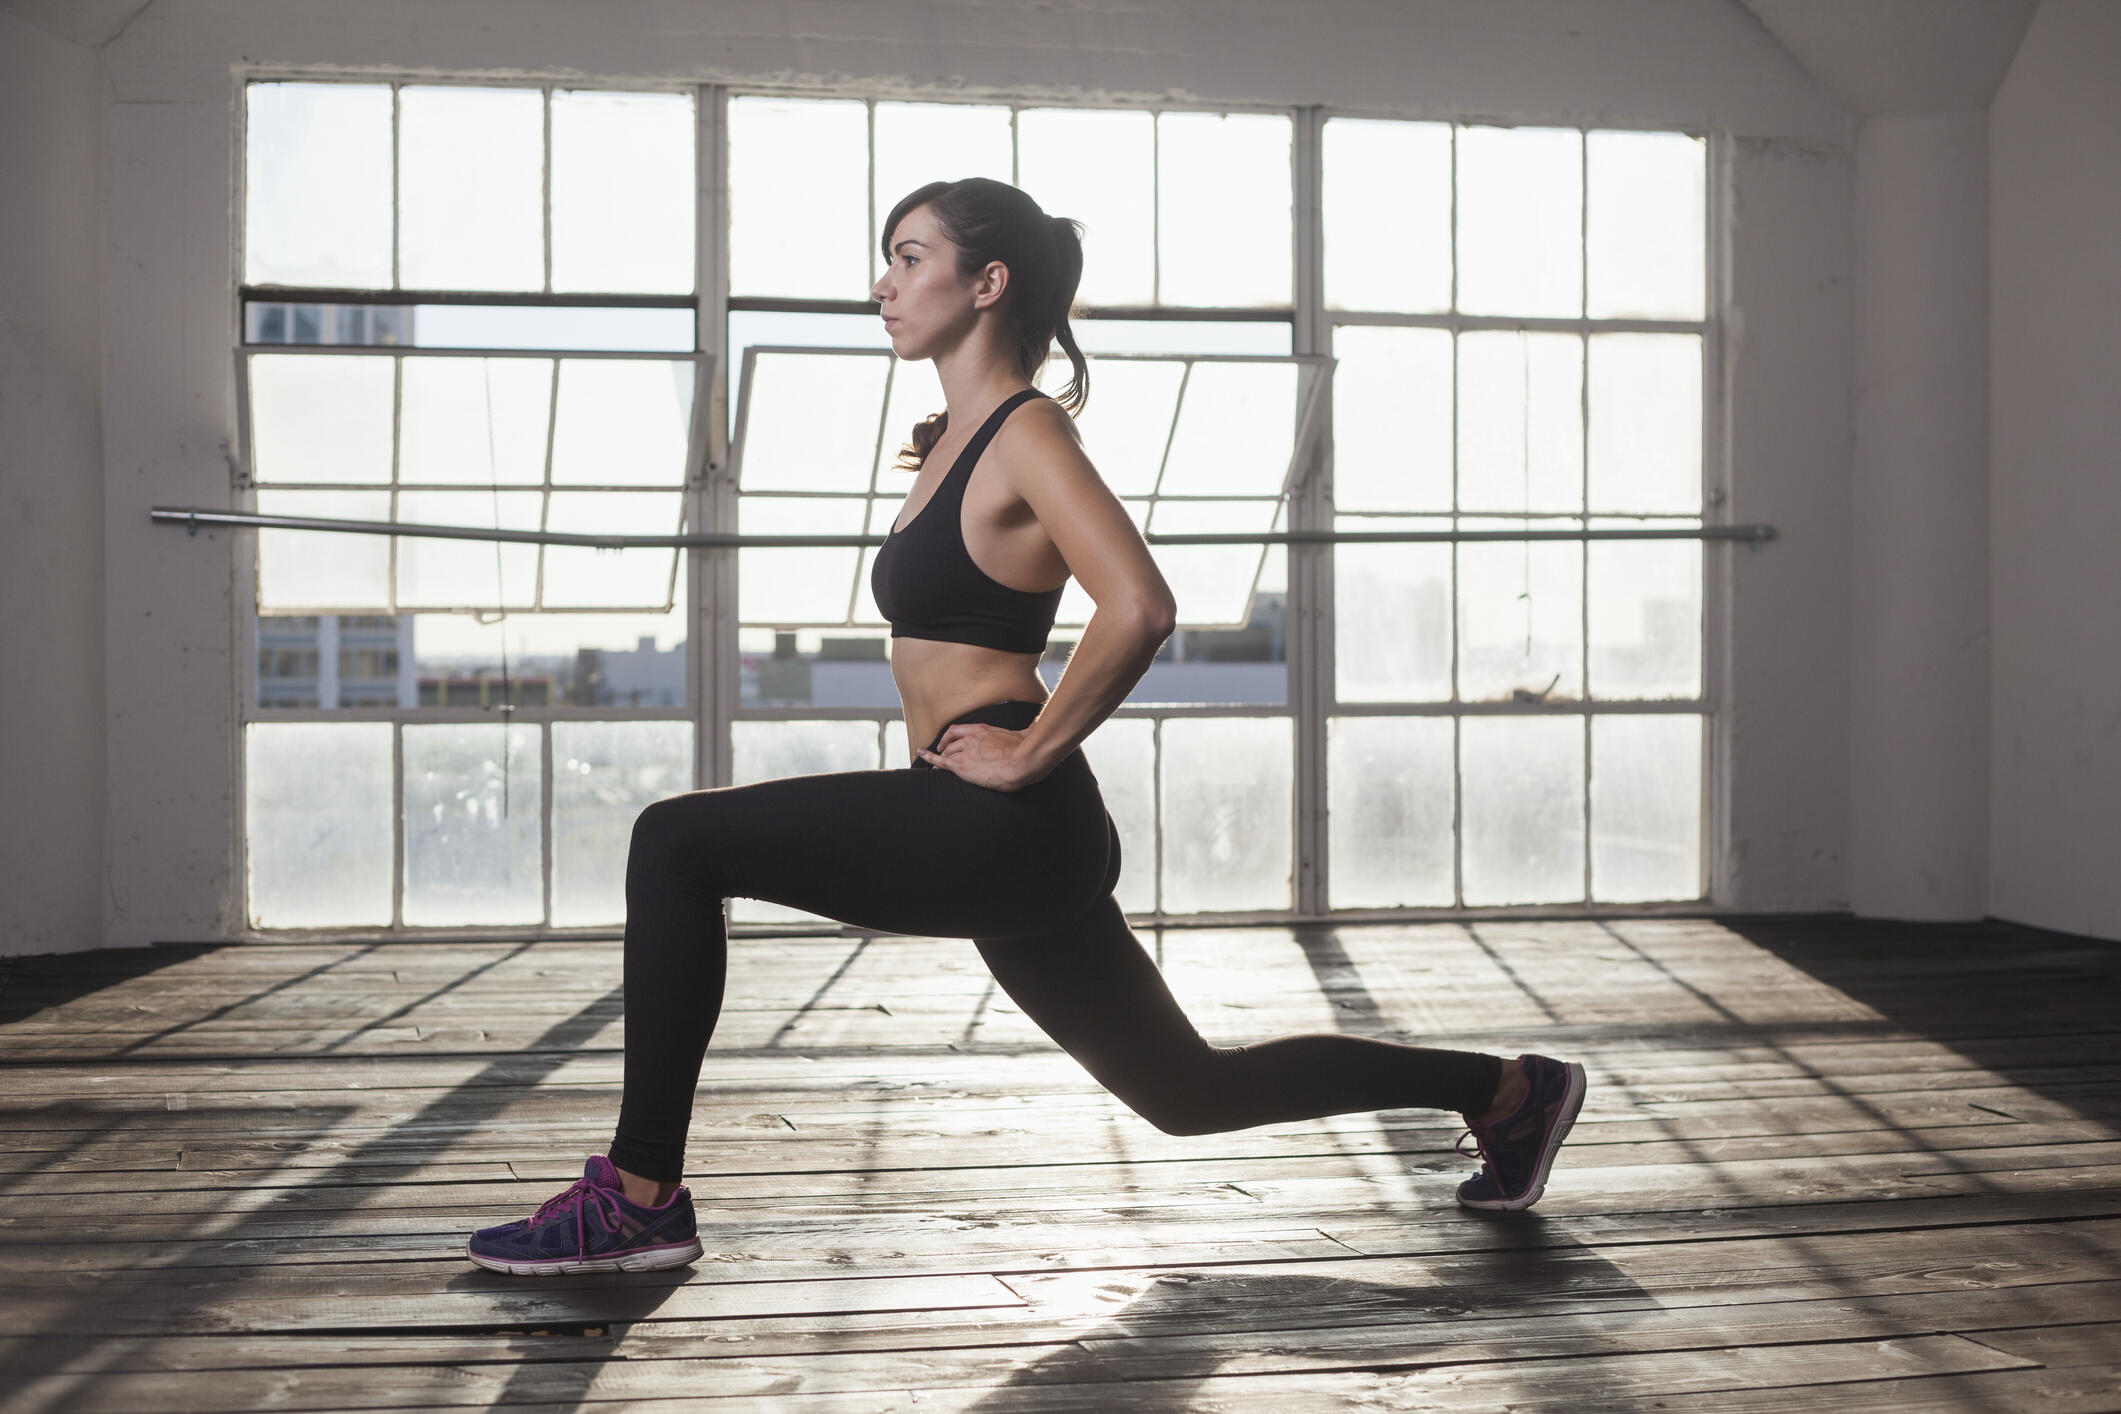 A woman in black fitness leggings and a black sports bra doing lunges in an empty studio.